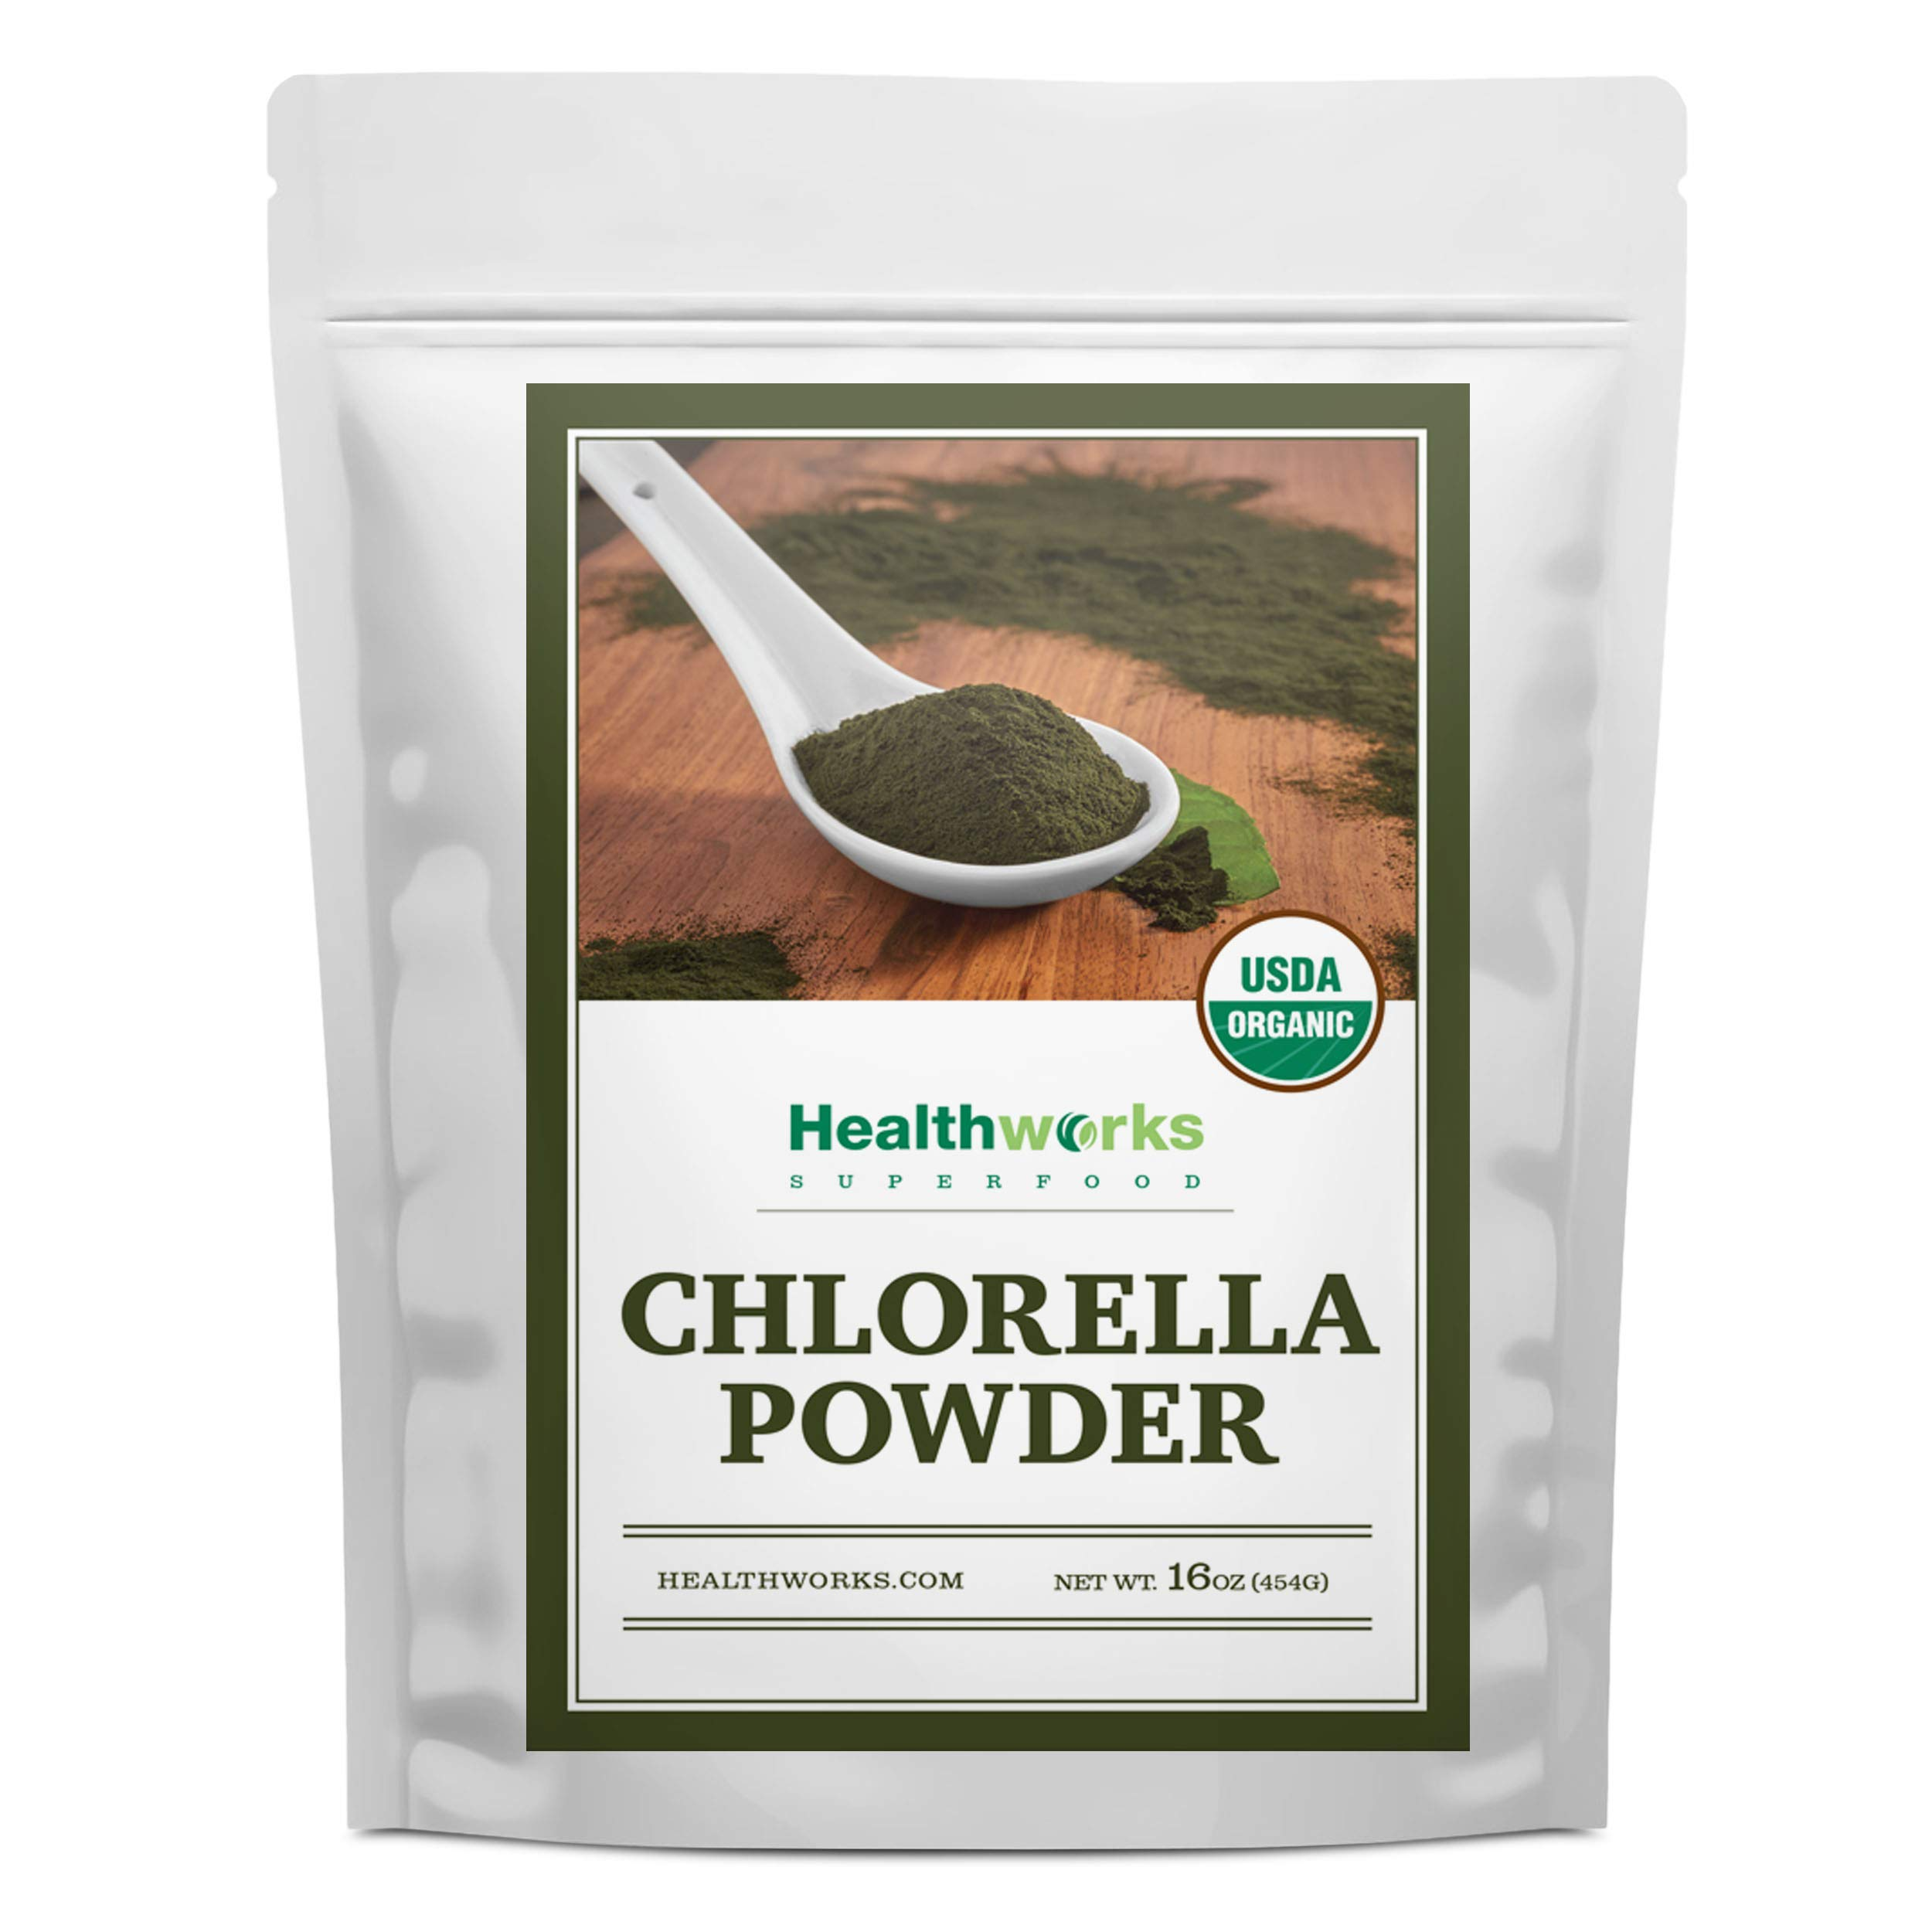 Healthworks Chlorella Powder Organic (16 Ounces / 1 Pound) | Broken Cell Wall & All-Natural | Protein, Vitamin C & E | Great with Smoothies & Baked Goods